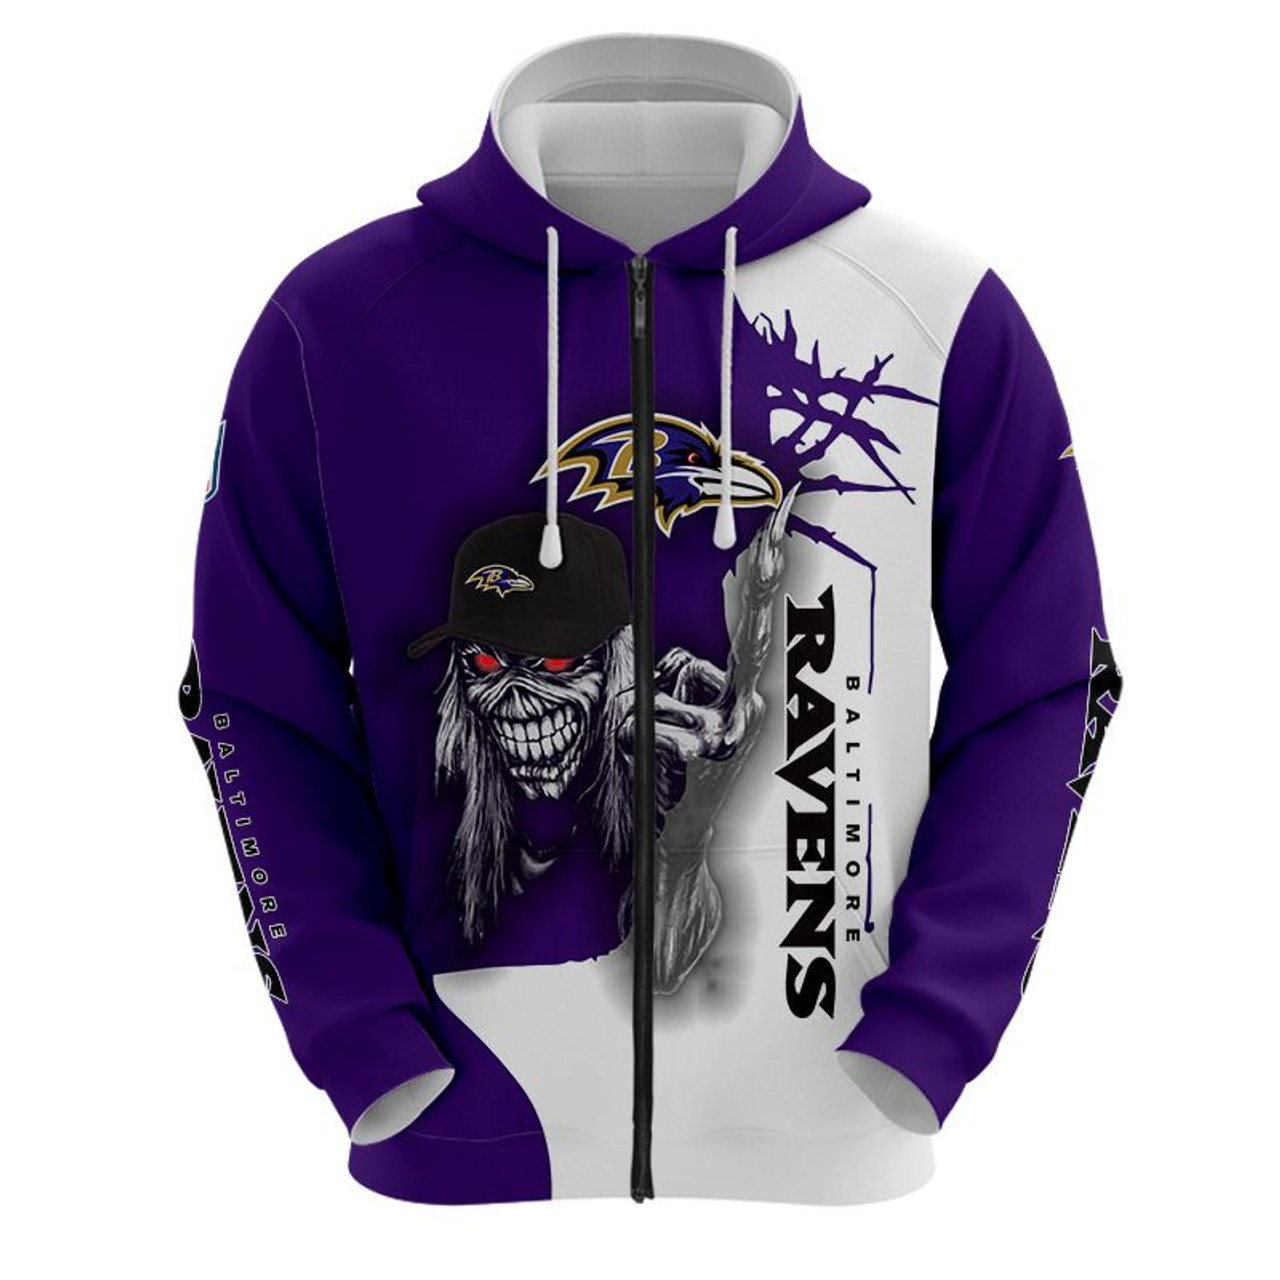 **(OFFICIAL-N.F.L.BALTIMORE-RAVENS-TRENDY-ZIPPERED-HOODIE & BIG-RAVENS-MUMMIFIED-SKELETON/NICE-CUSTOM-3D-EFFECT-GRAPHIC-PRINTED-ALL-OVER-DOUBLE-SIDED-DESIGNED/OFFICIAL-RAVENS-TEAM-COLORS & OFFICIAL-RAVENS-TEAM-LOGOS/WARM-PREMIUM-ZIPPERED-HOODIES)**